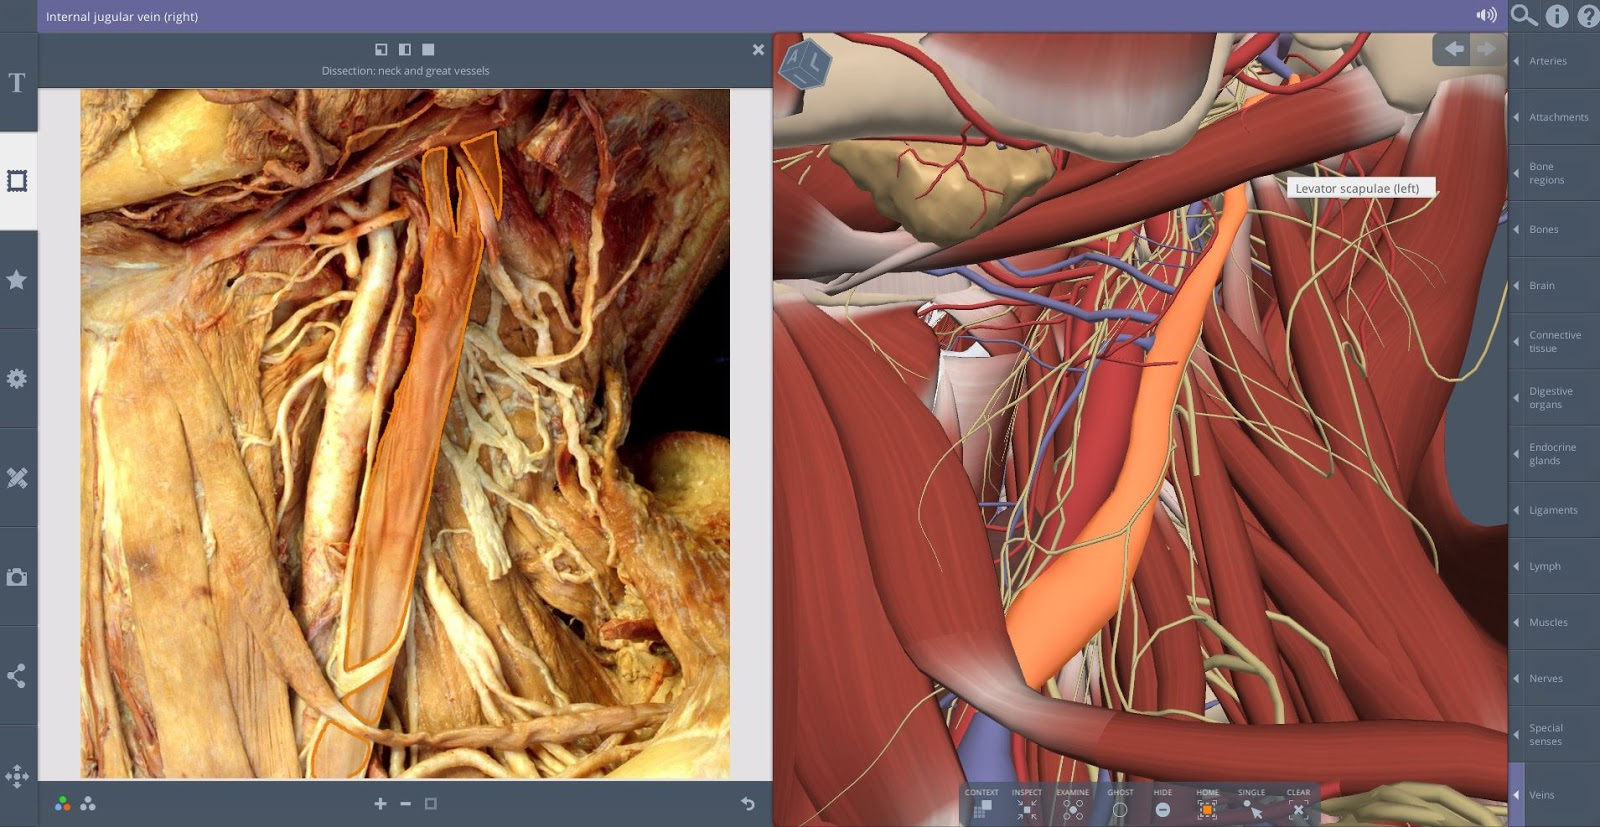 Li Ping Medical Library Cuhk New Features Of Anatomy 3d Real